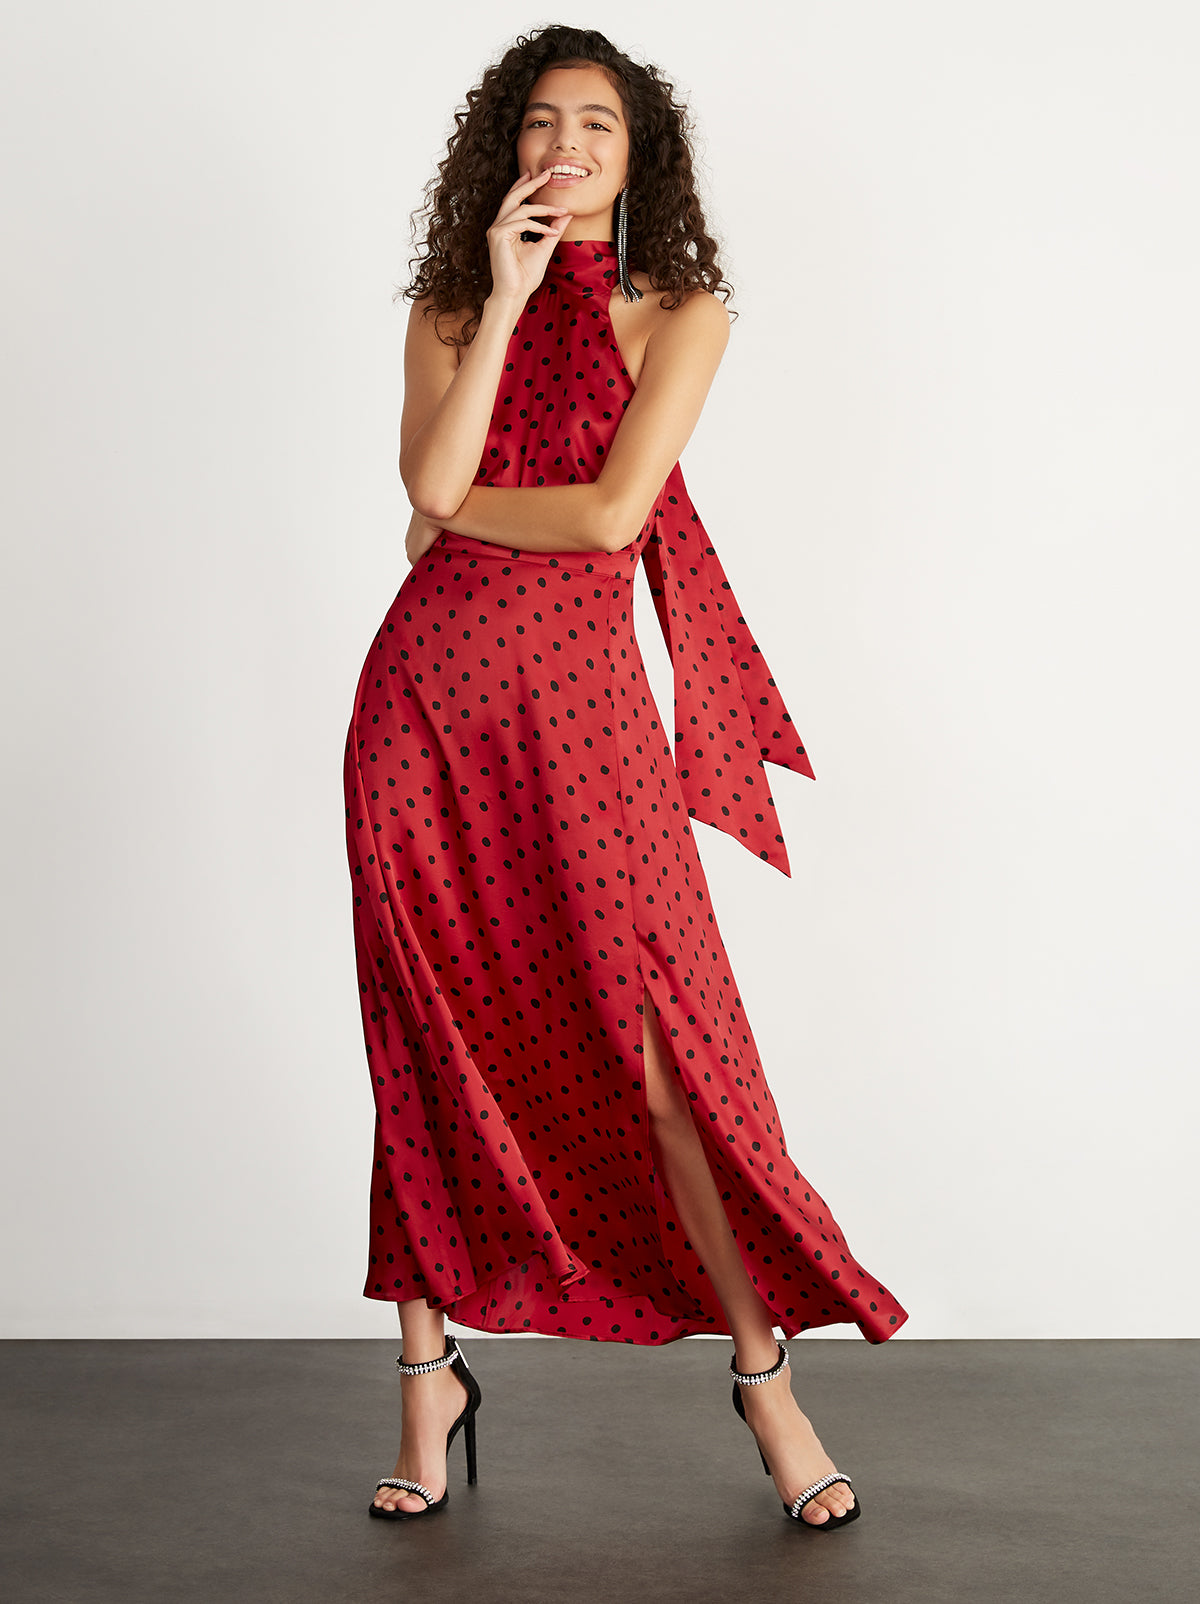 Vera Red Polka Dot Halterneck Dress by KITRI Studio